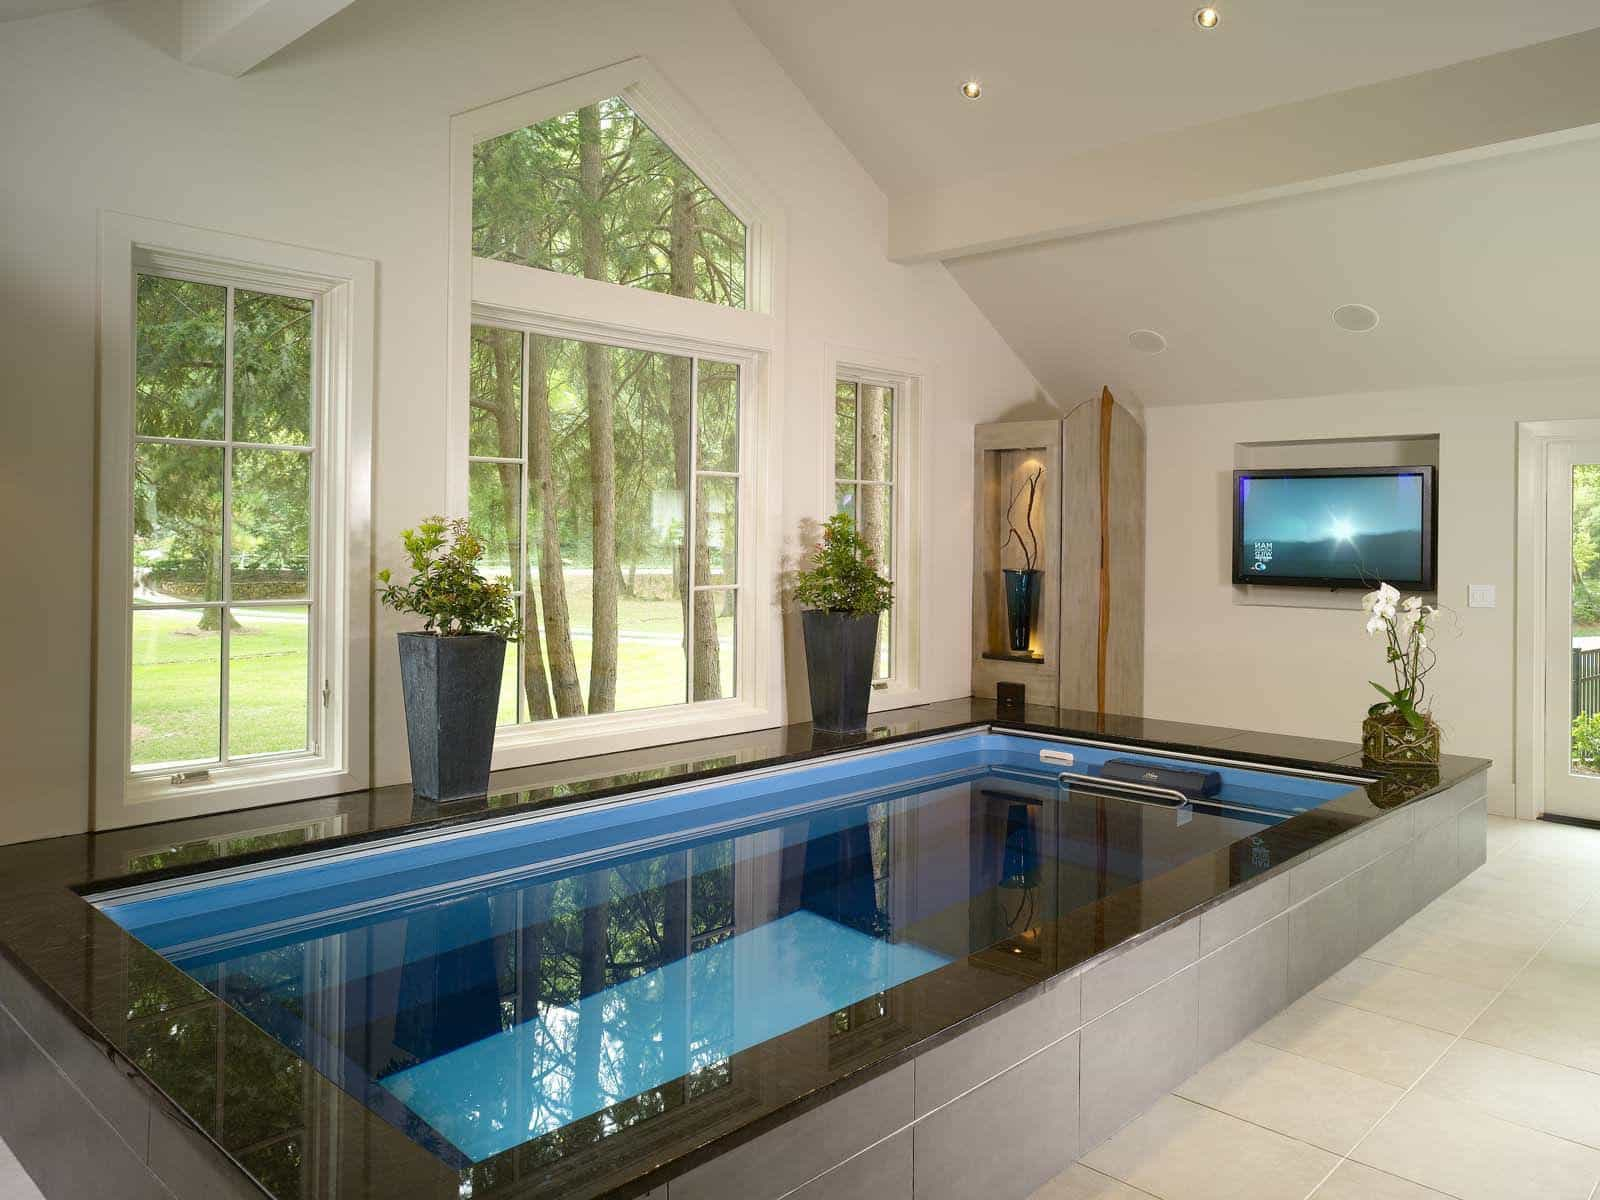 Fashoinable Small Indoor Swimming Pools Decorating With LCD TV (Image 5 of 14)